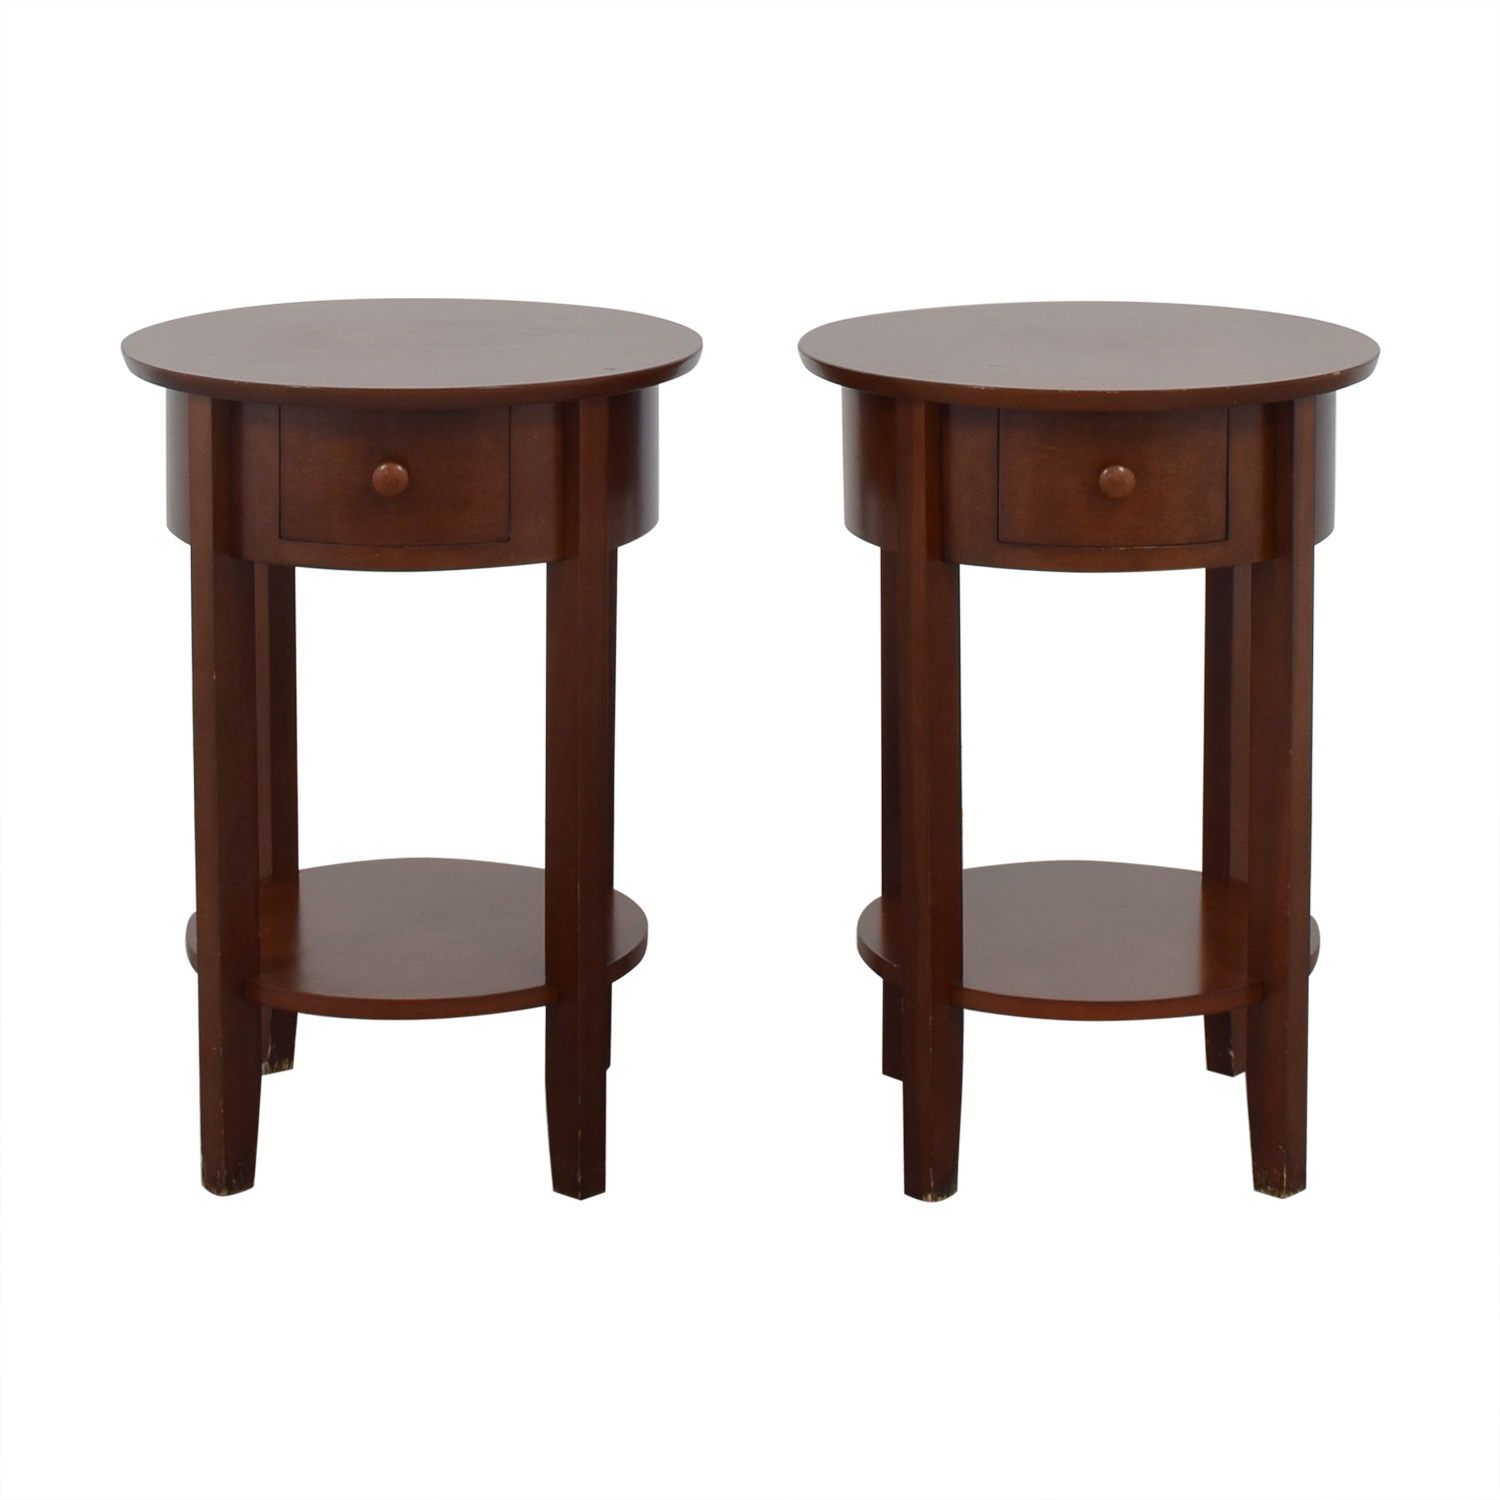 Pottery Barn Pottery Barn Oval Nightstands used